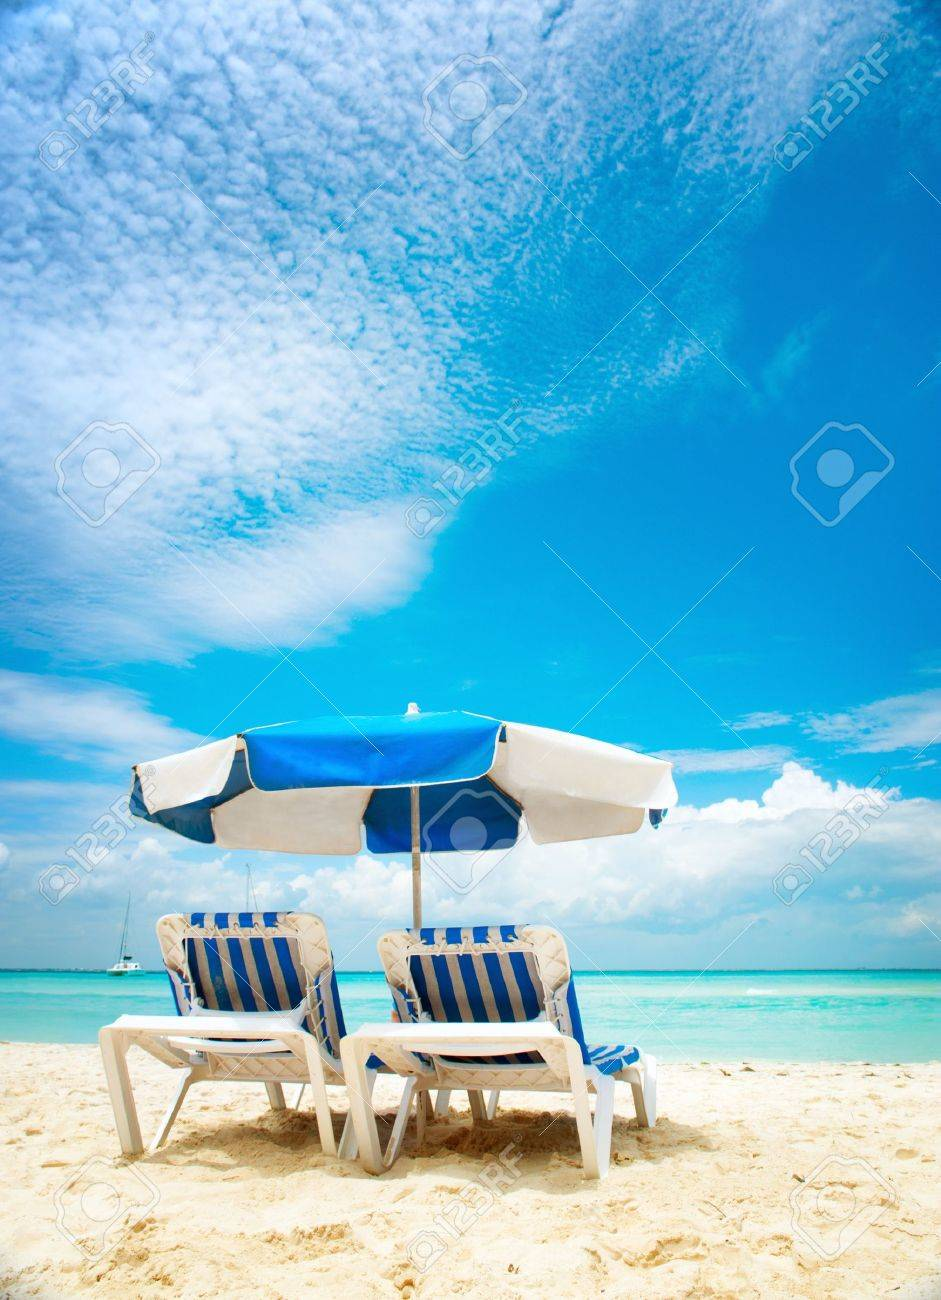 Vacation and Tourism concept  Sunbeds on the beach Stock Photo - 14193541